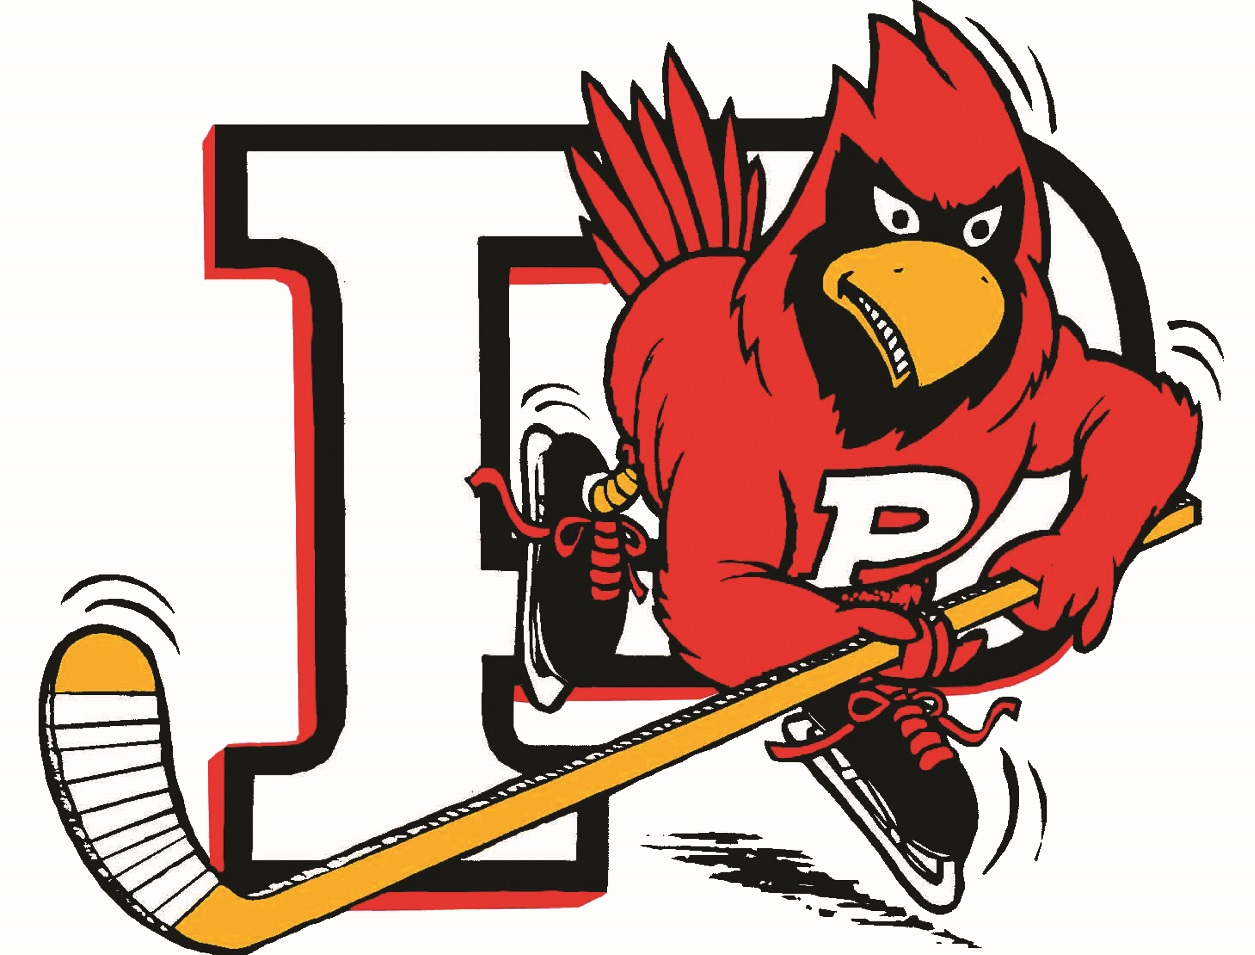 PLATTSBURGH CARDINALS HOCKEY SCHEDULE